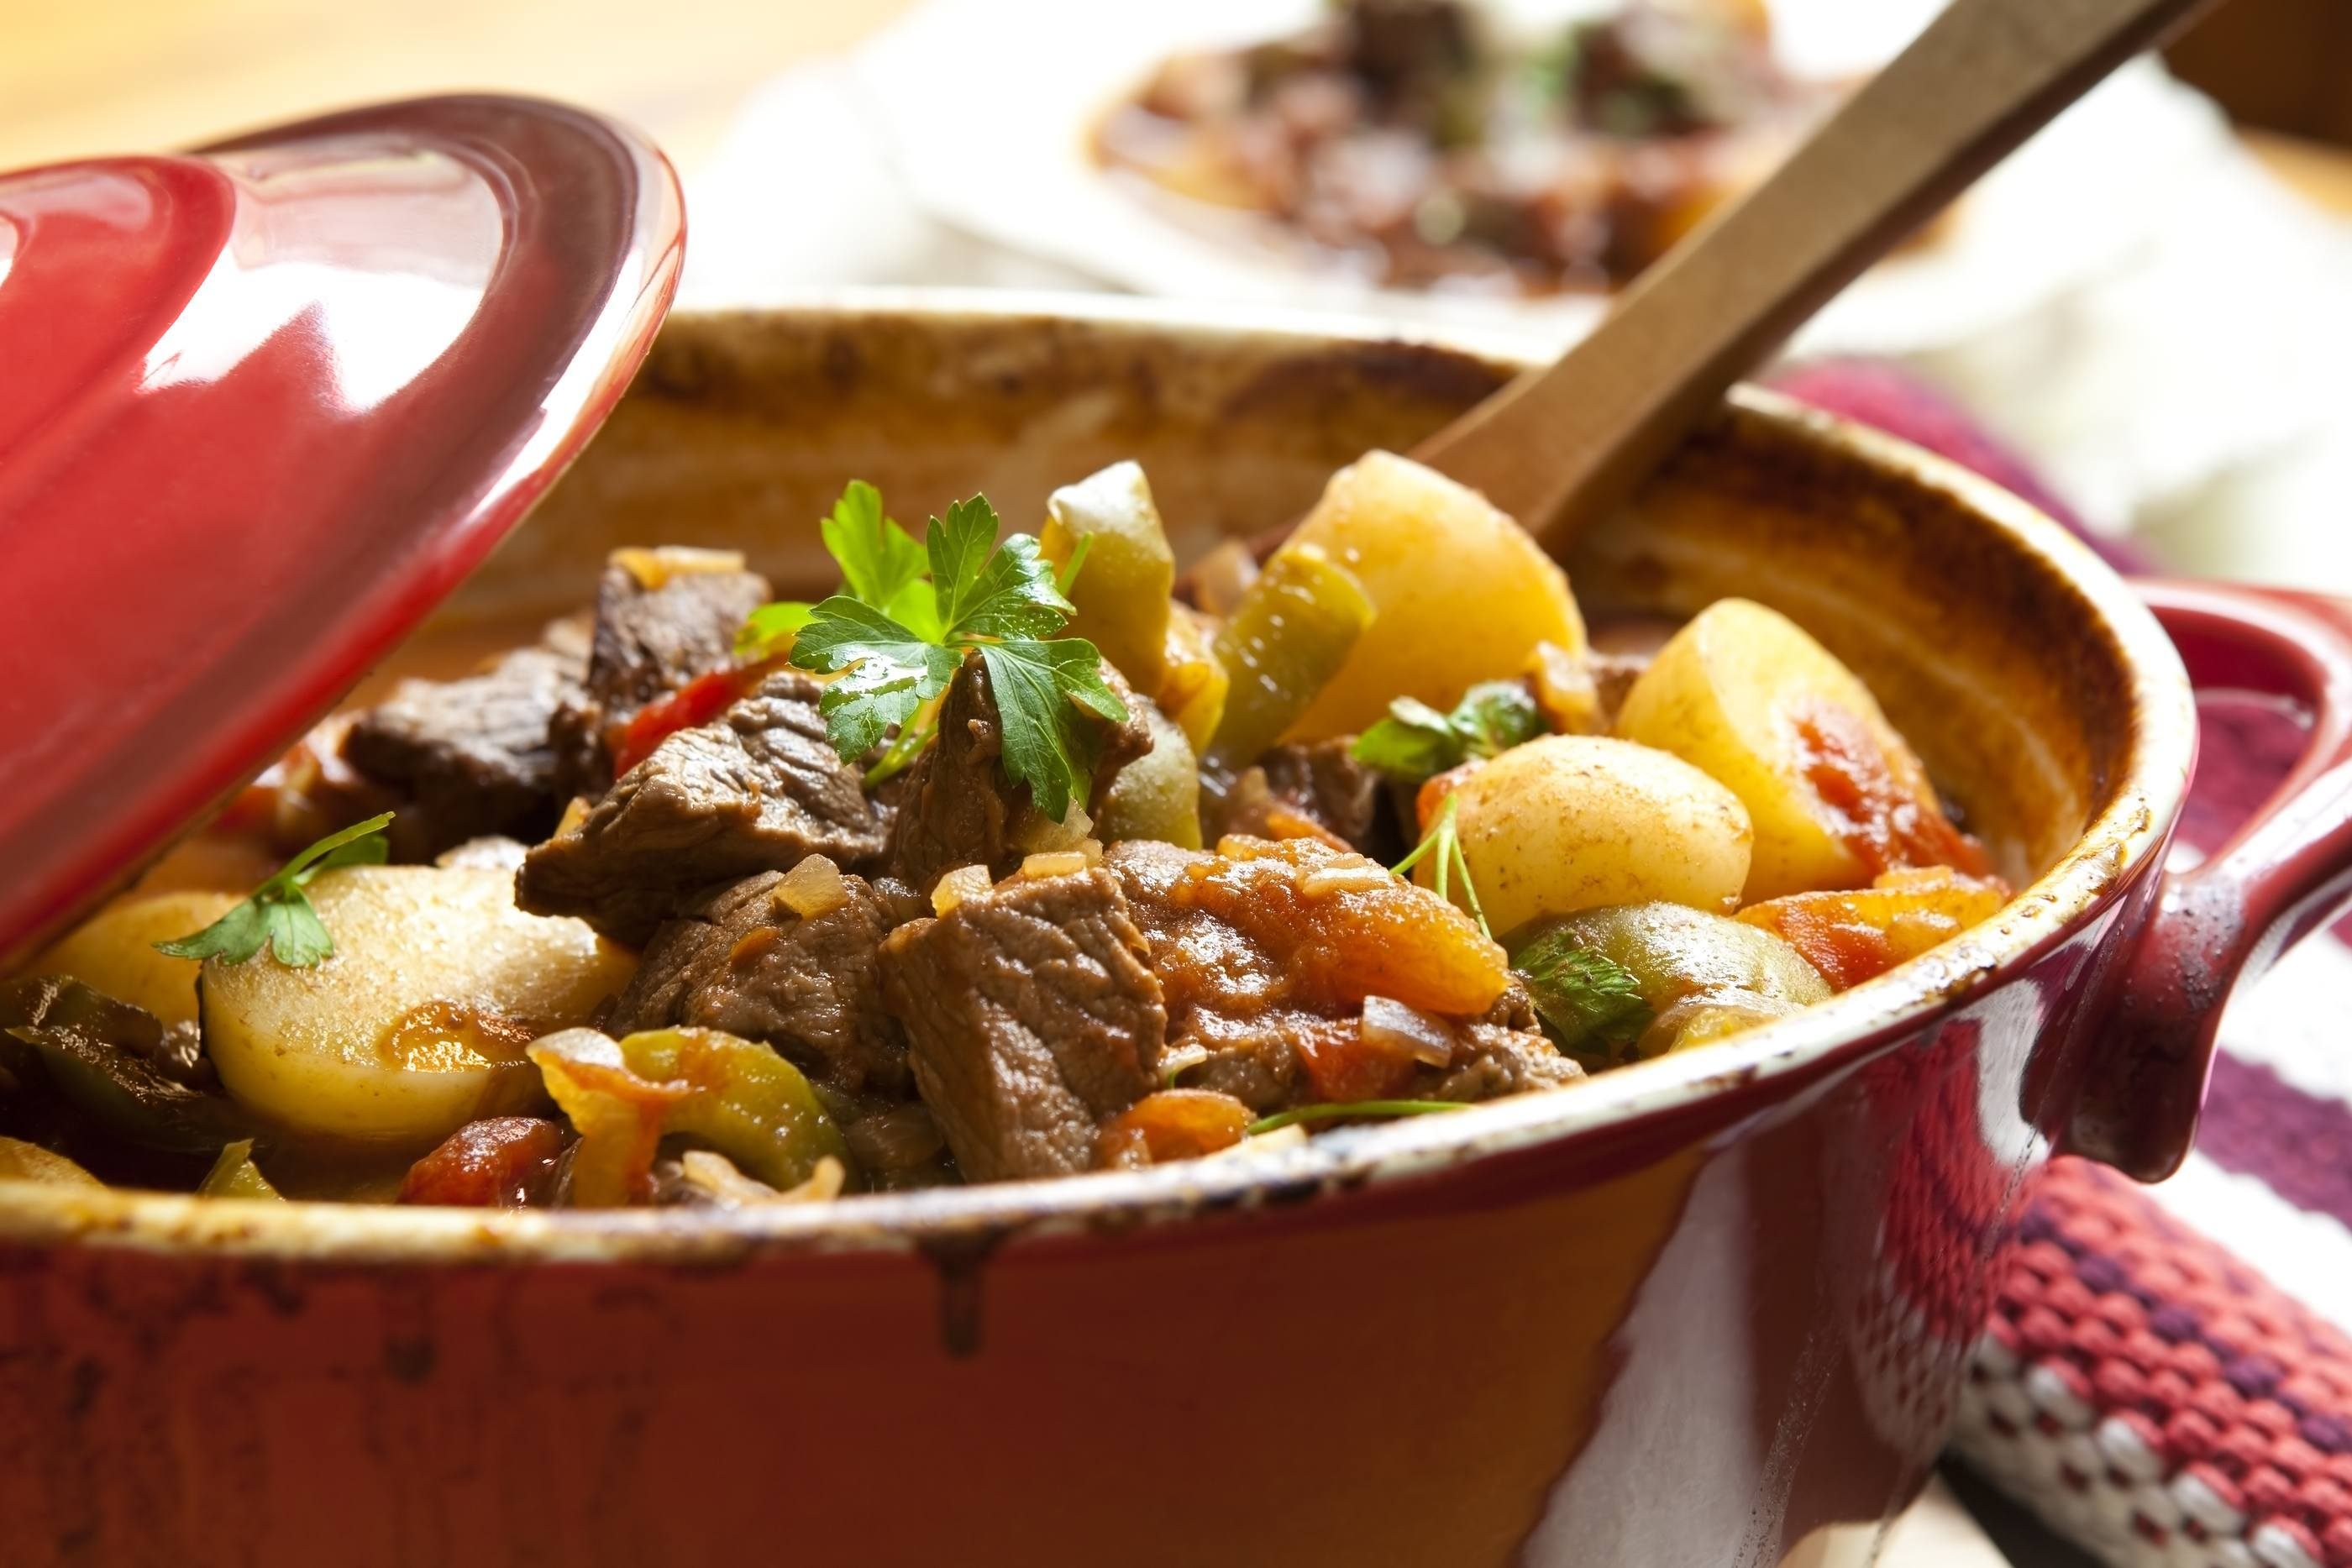 Traditional goulash or beef stew in red crock pot ready to serve. Shallow DOF.